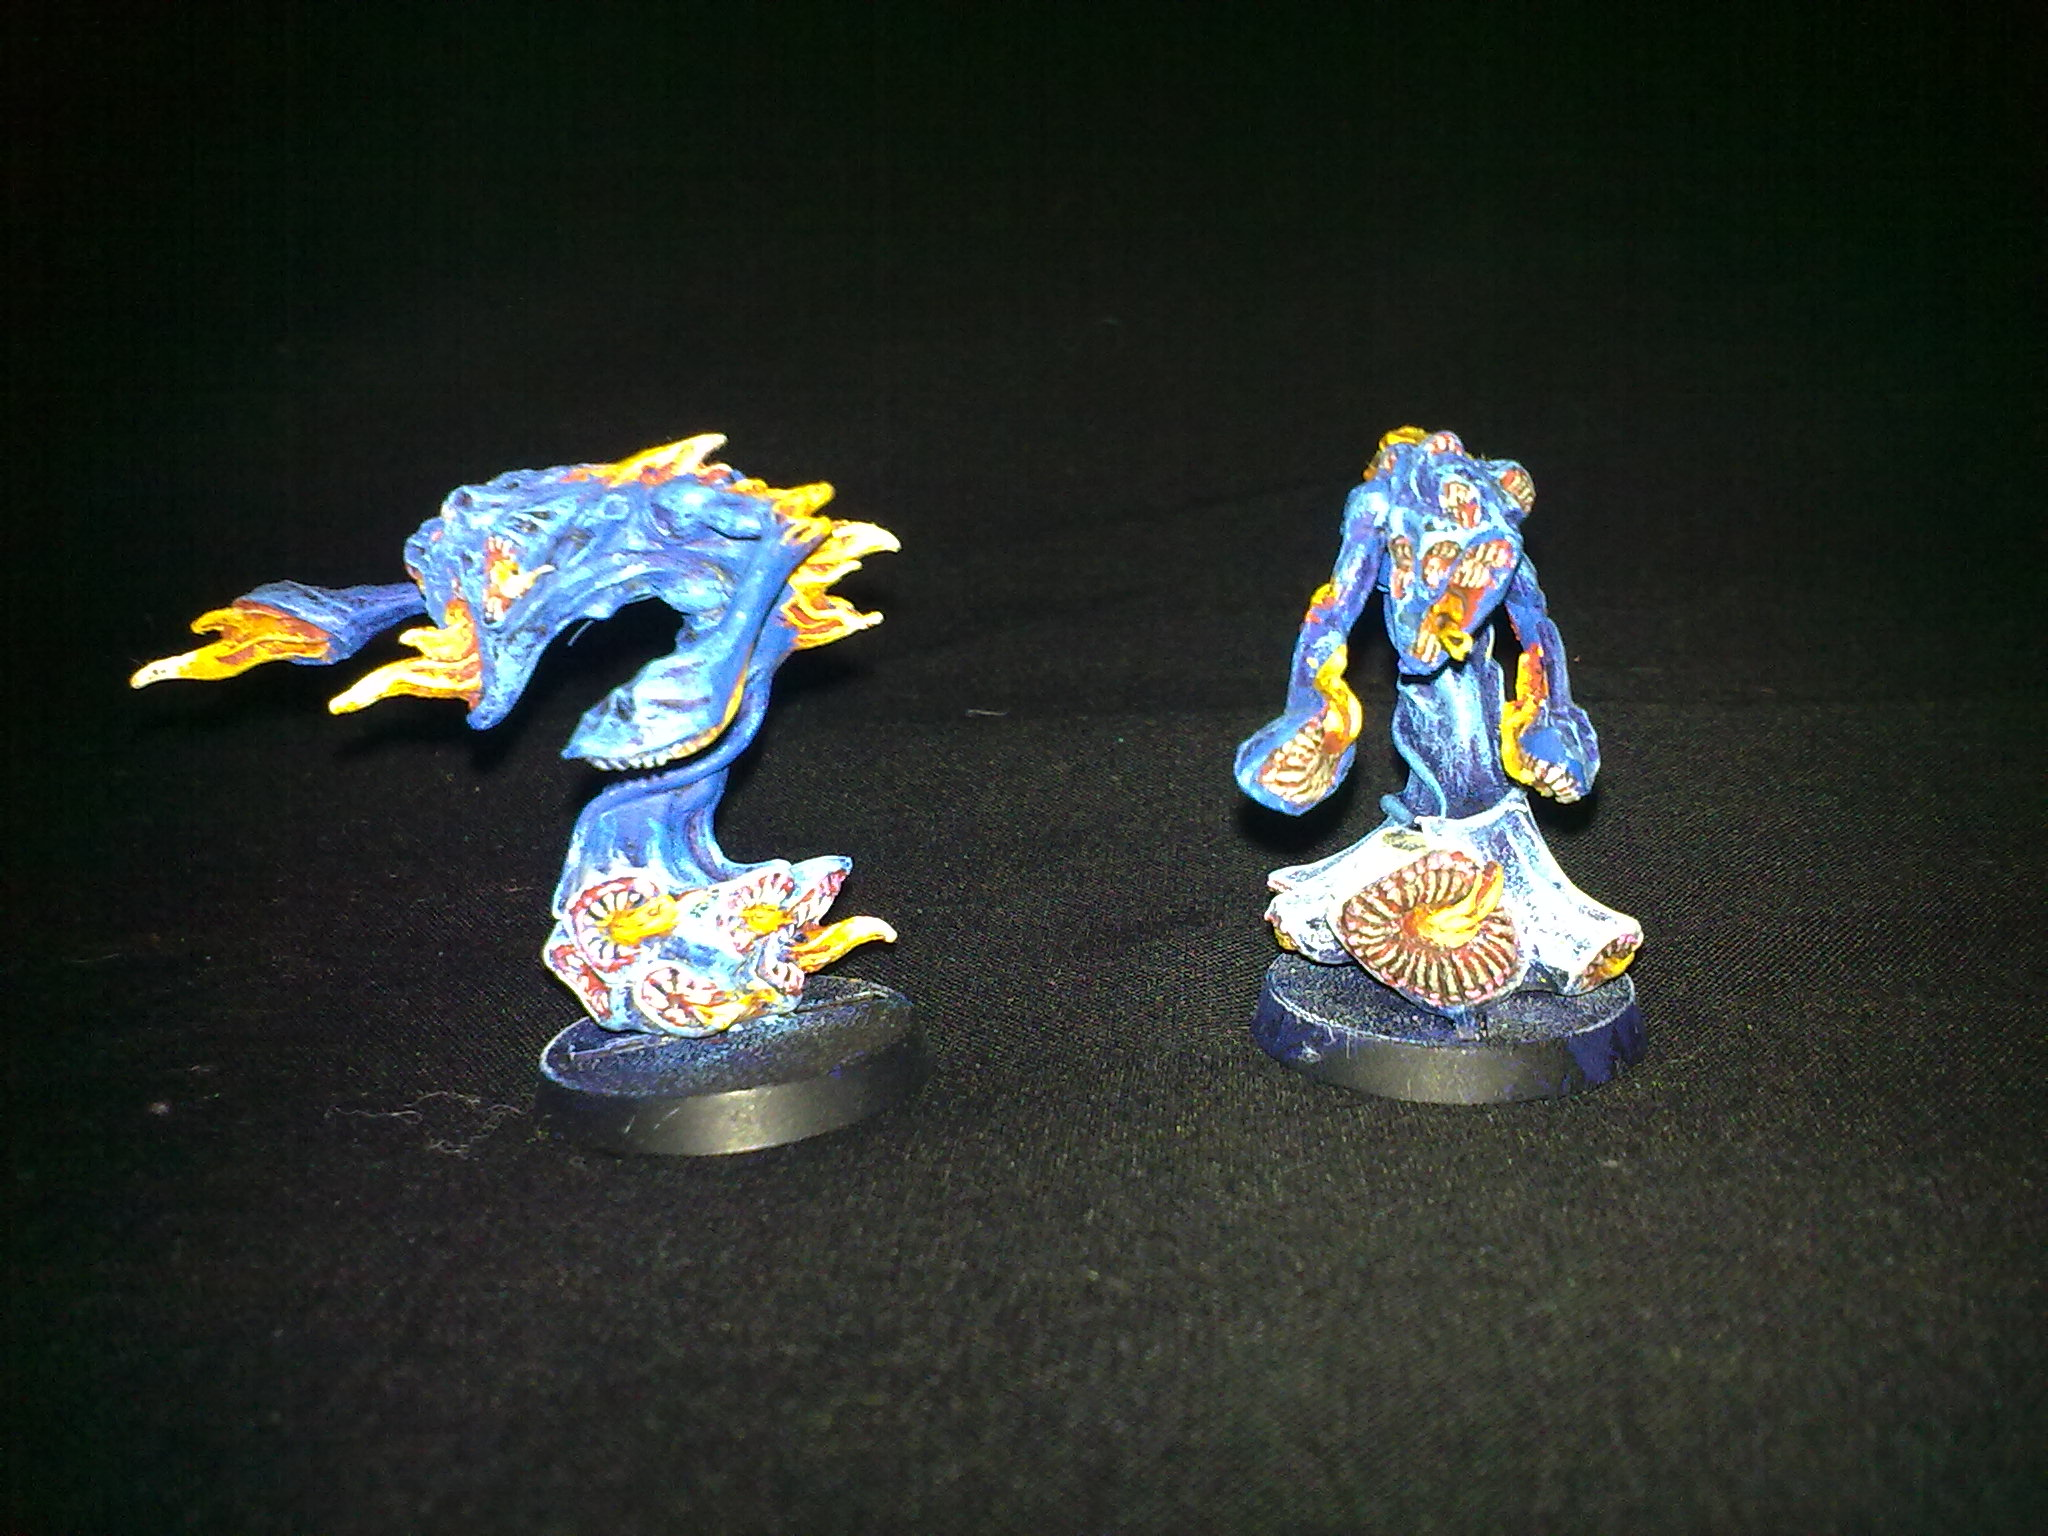 Flamers of Tzeench, painted by Questing Knight